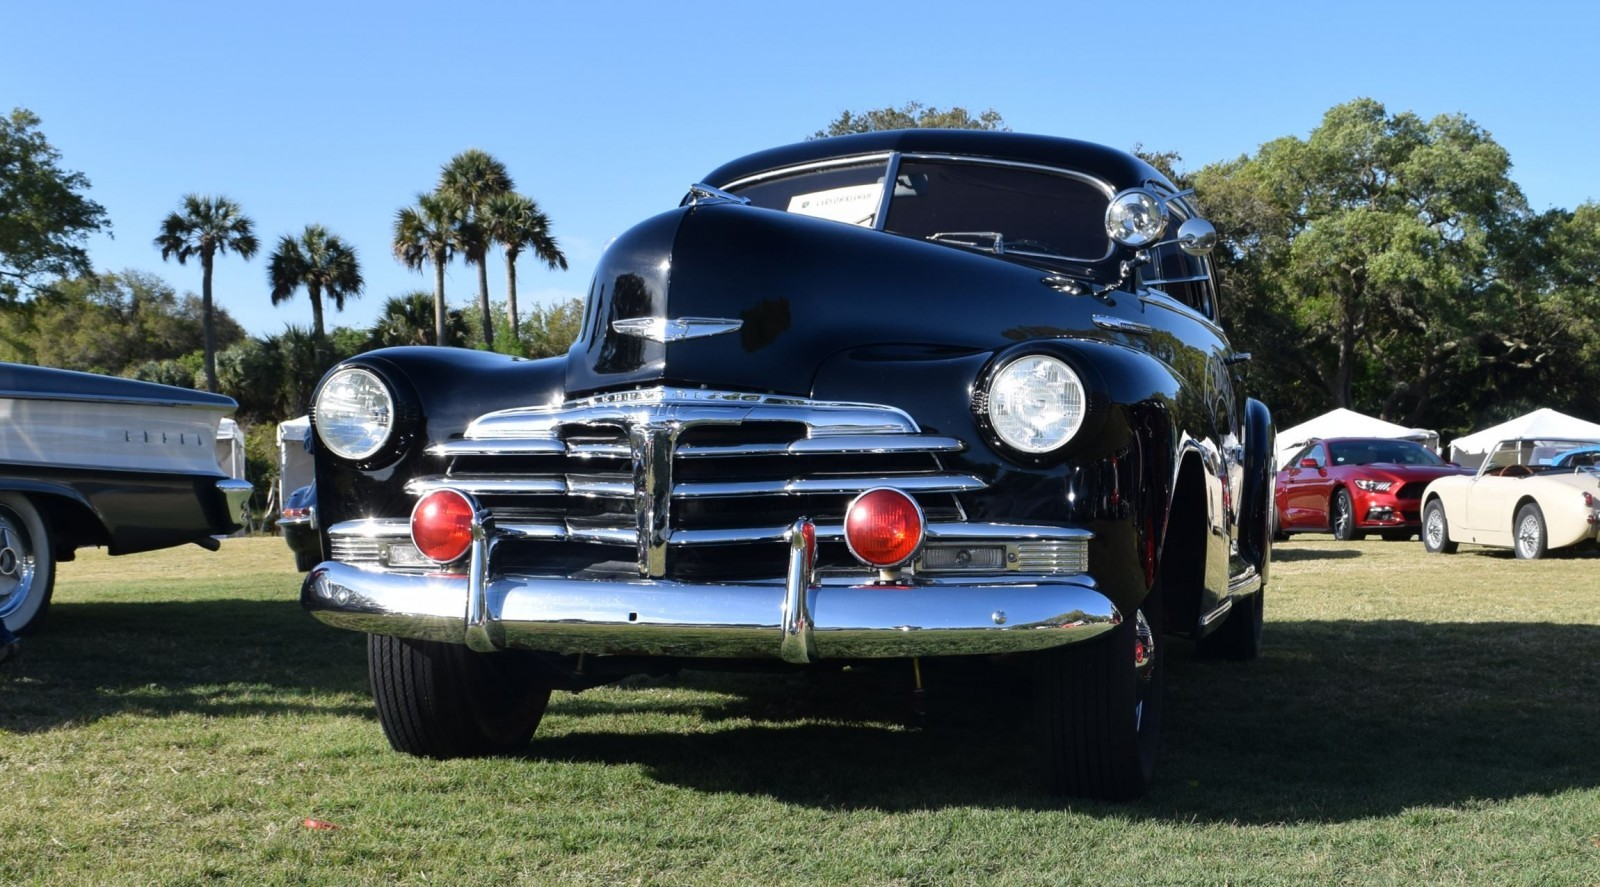 concours 2016 1948 chevrolet fleetline aerosedan charleston pd. Cars Review. Best American Auto & Cars Review